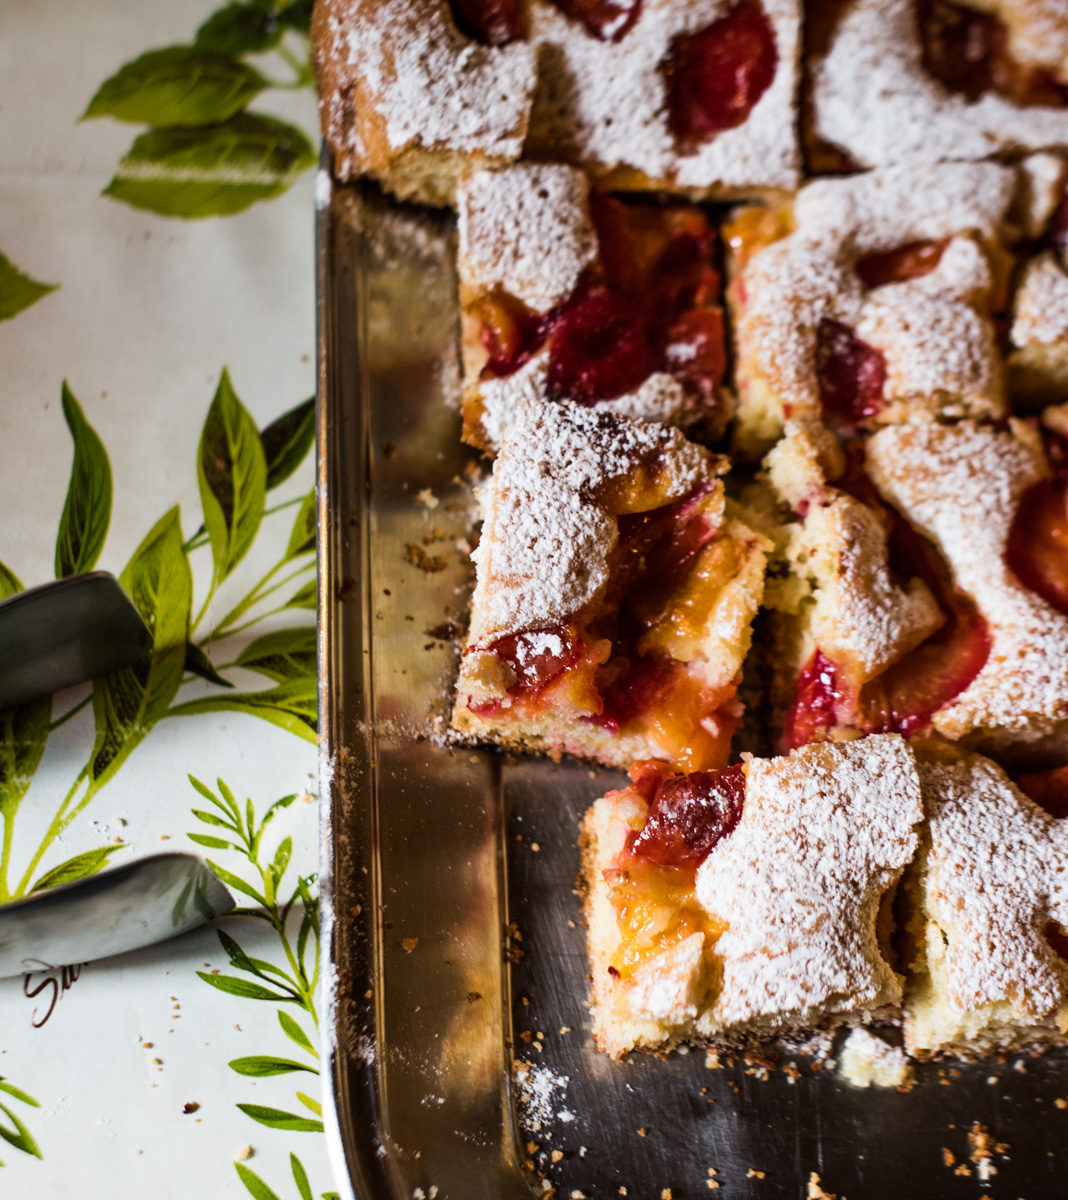 Freshly baked dessert with red and yellow jelly and powdered sugar